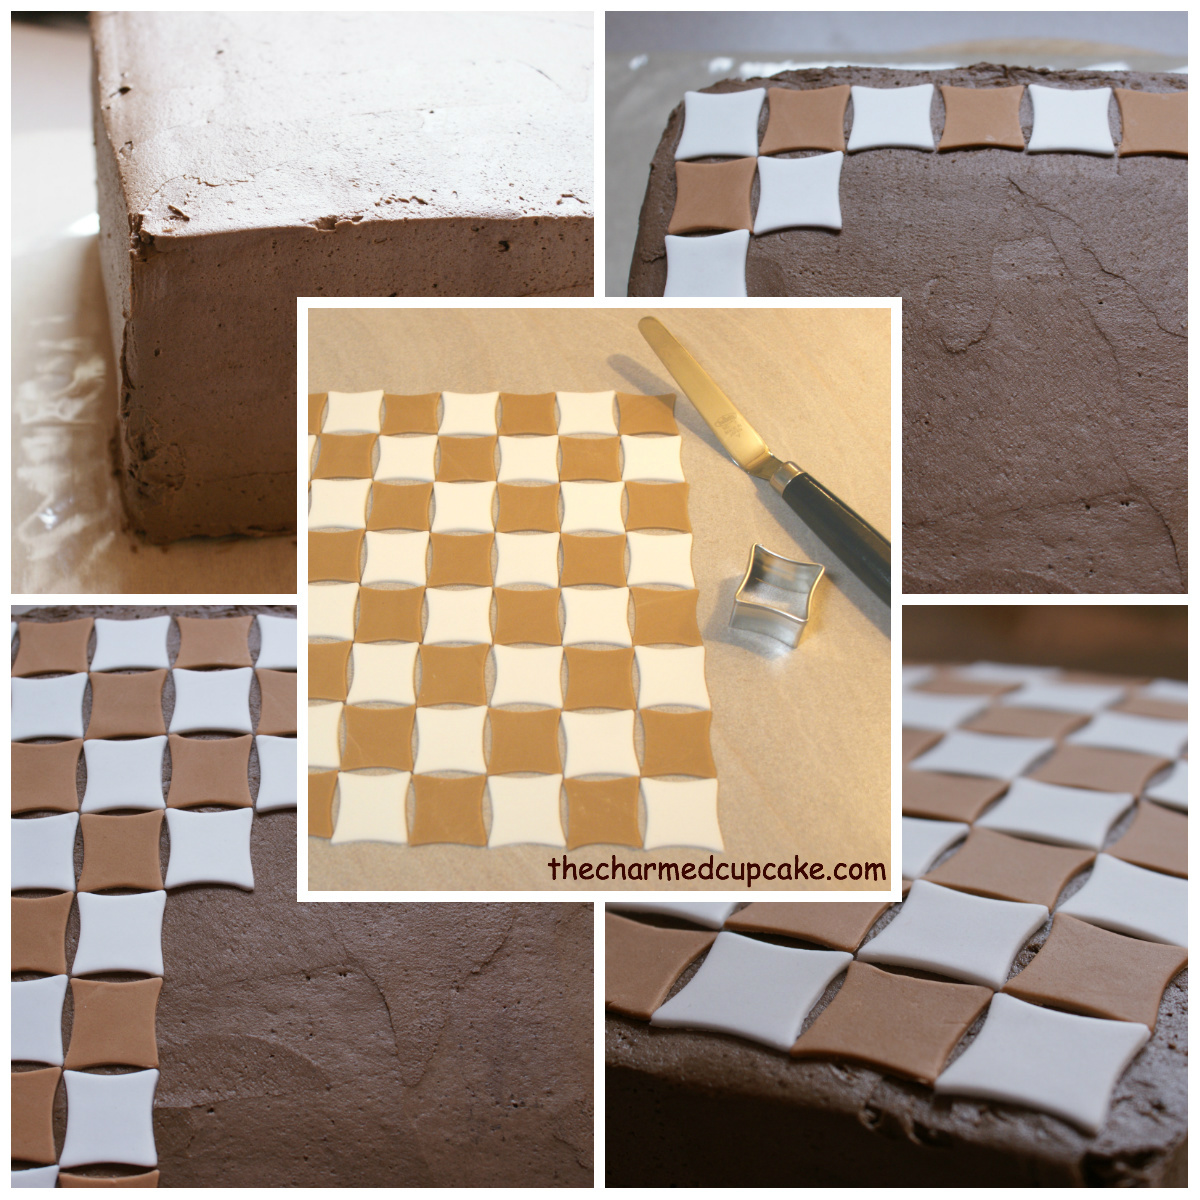 Diy Wood Chess Board Build Chessboard Chest Plans Diy Plans To Build A Smoker